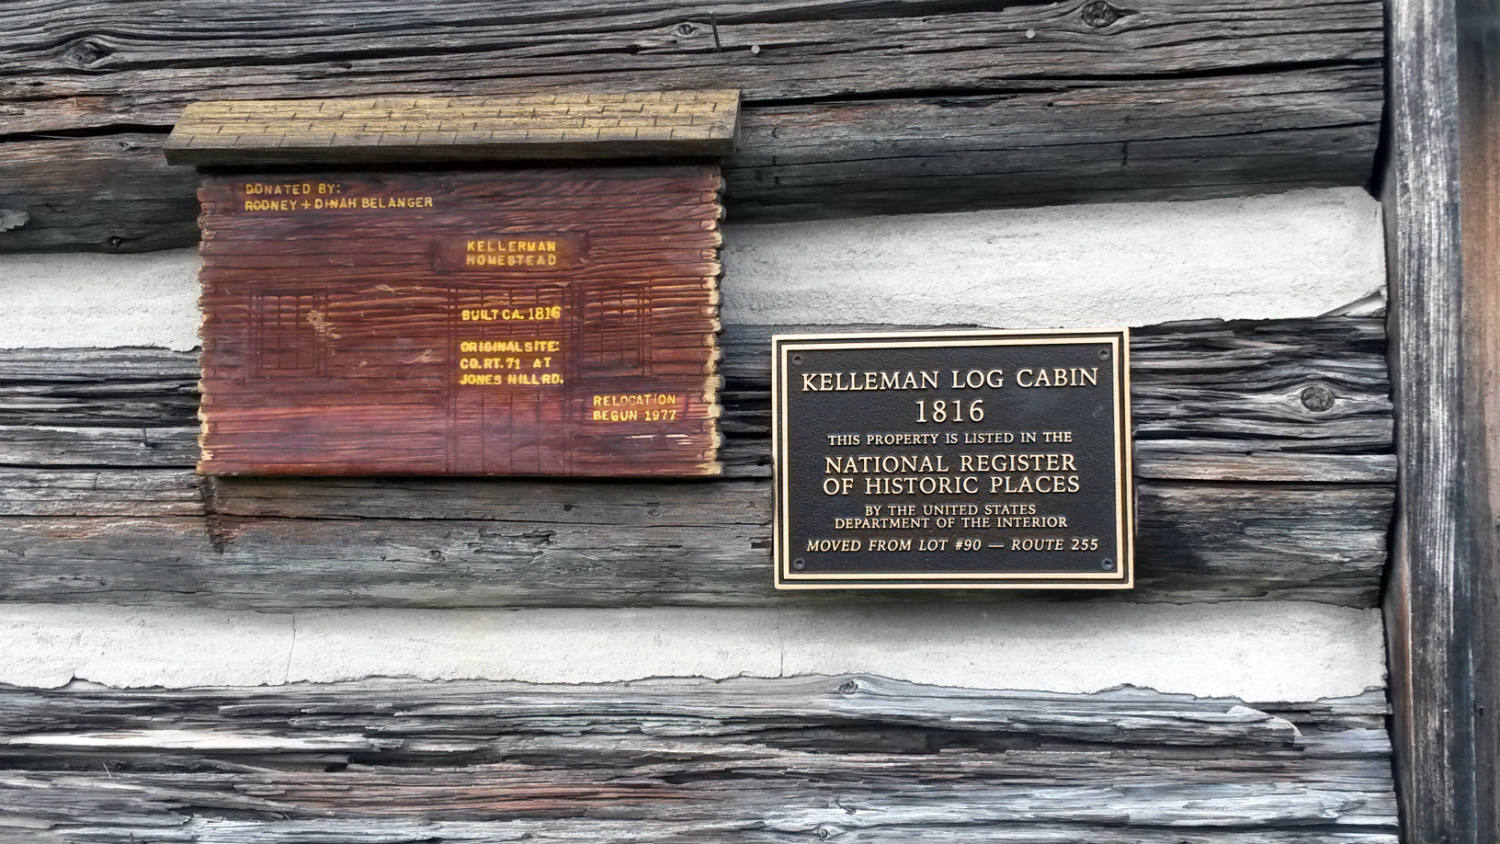 Kelleman Log Cabin in Ricky Greene Memorial Park in Conesus